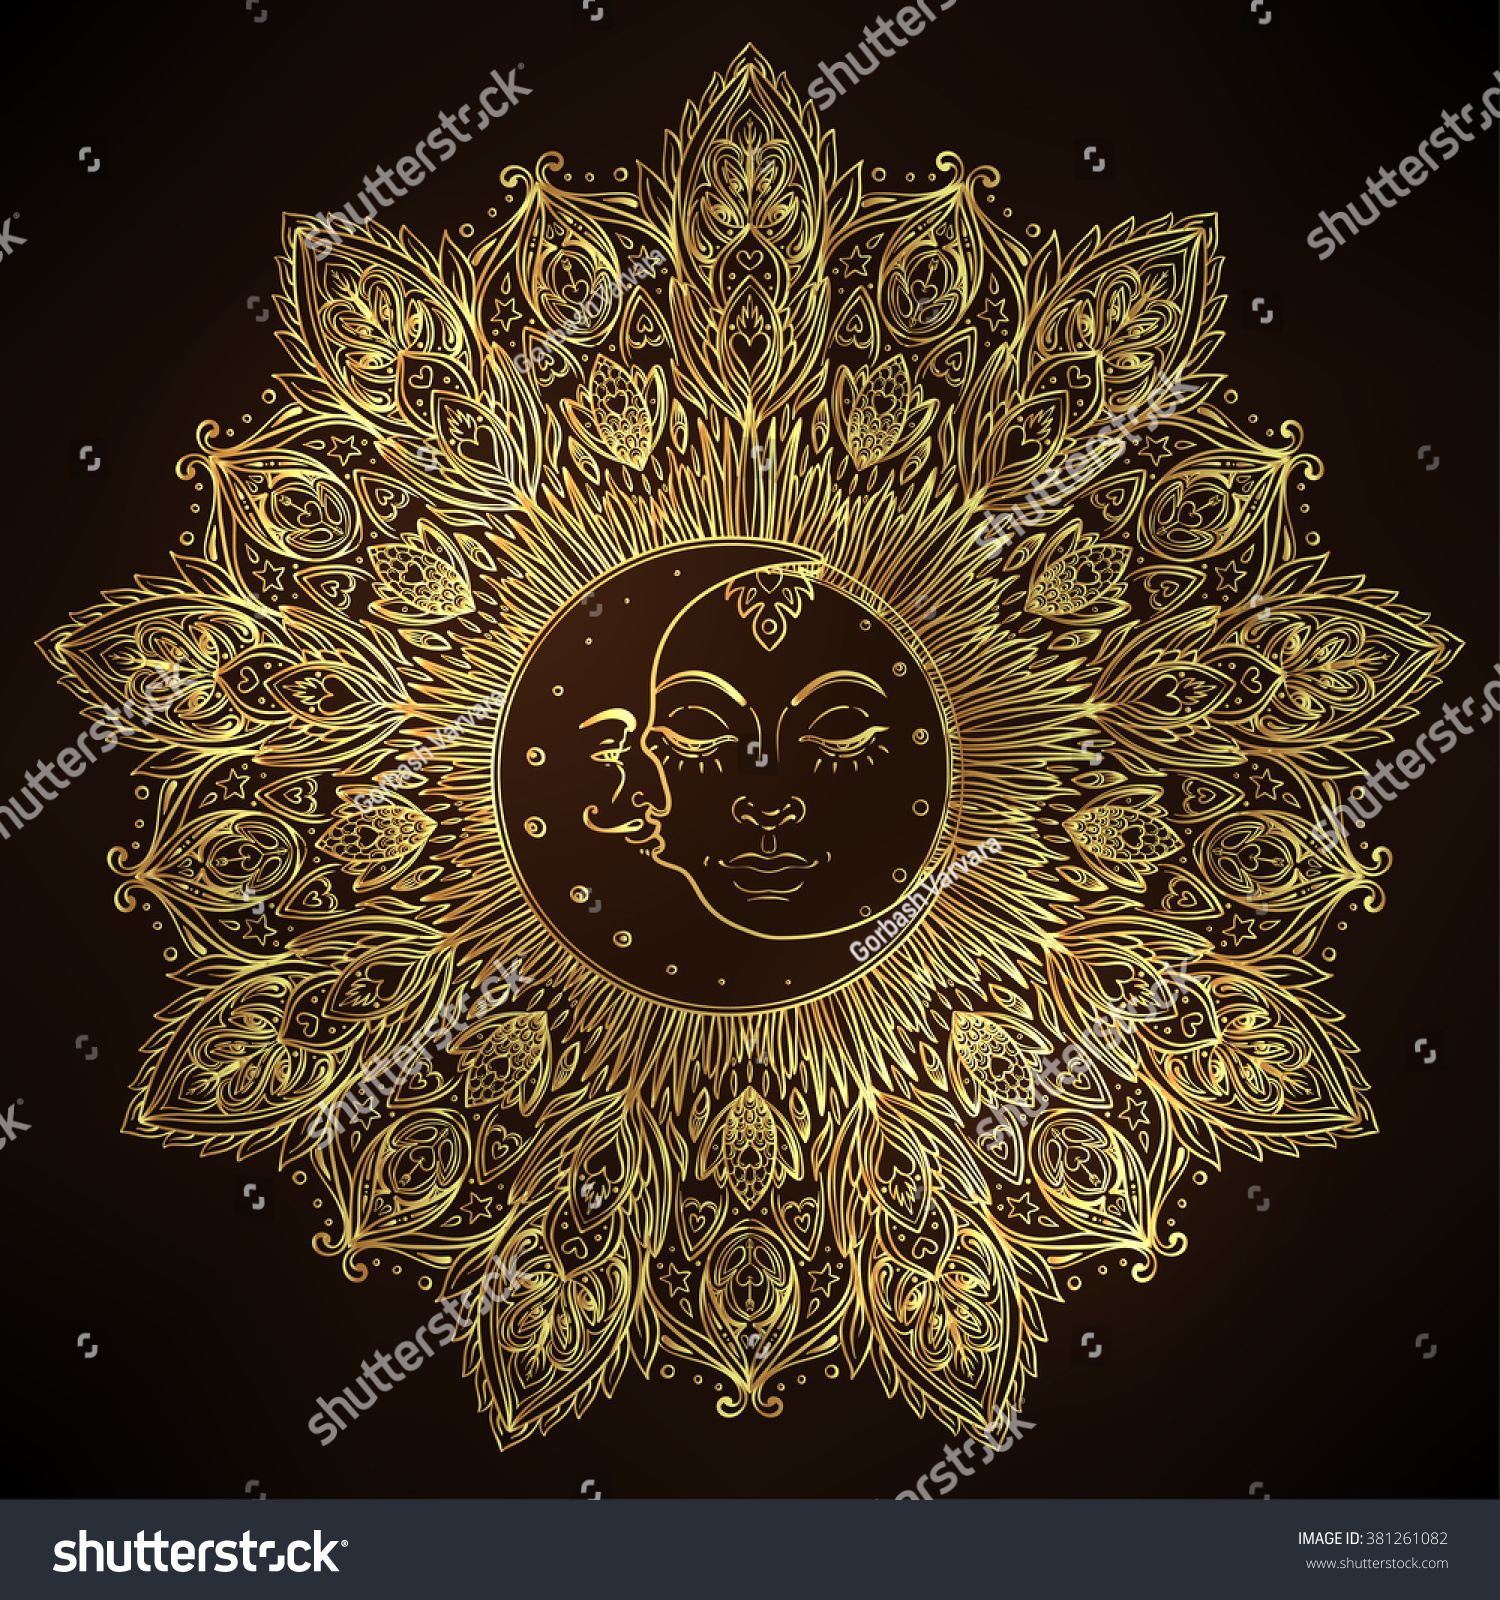 Sun moon symbols face inside ornate stock vector 381261082 sun moon symbols as a face inside ornate mandala round pattern vintage decorative vector biocorpaavc Images